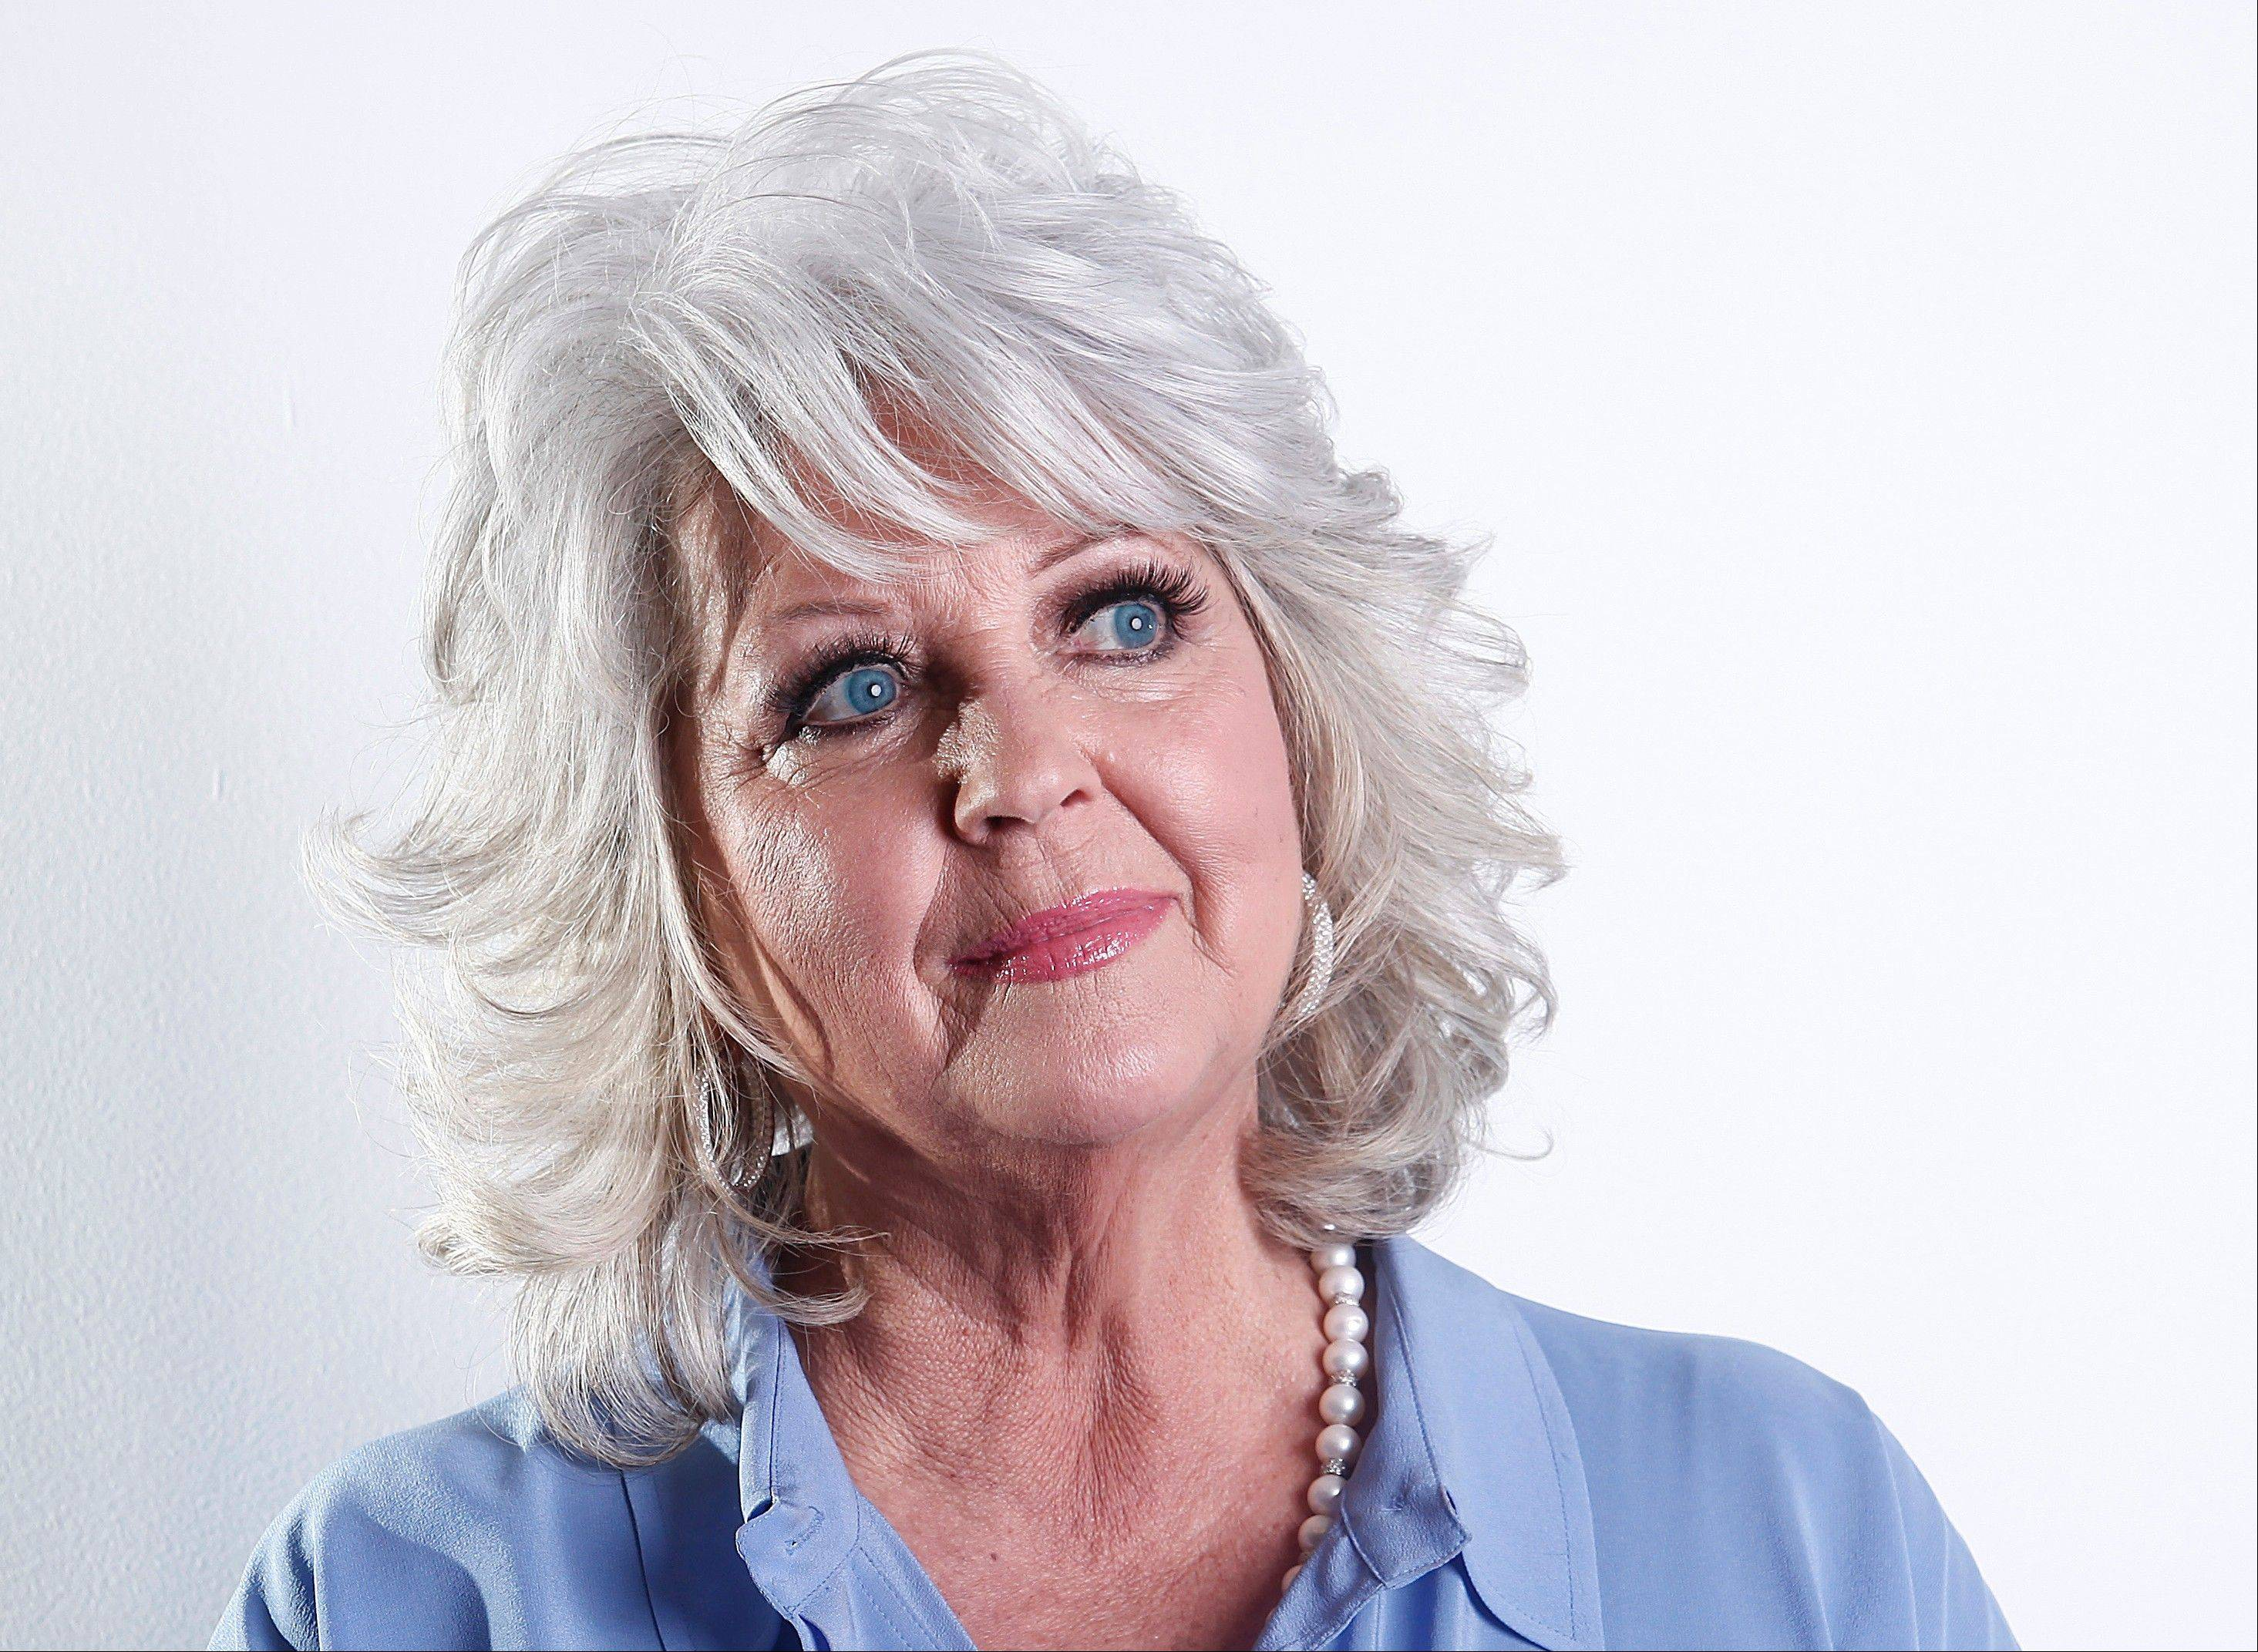 A week after celebrity chef Paula Deen�s admission of using racial slurs in the past surfaced in a discrimination lawsuit, pop culture watchers, experts in managing public relations nightmares and civil rights stalwarts who have tried to help other celebrities in her position see a long, bumpy road ahead.